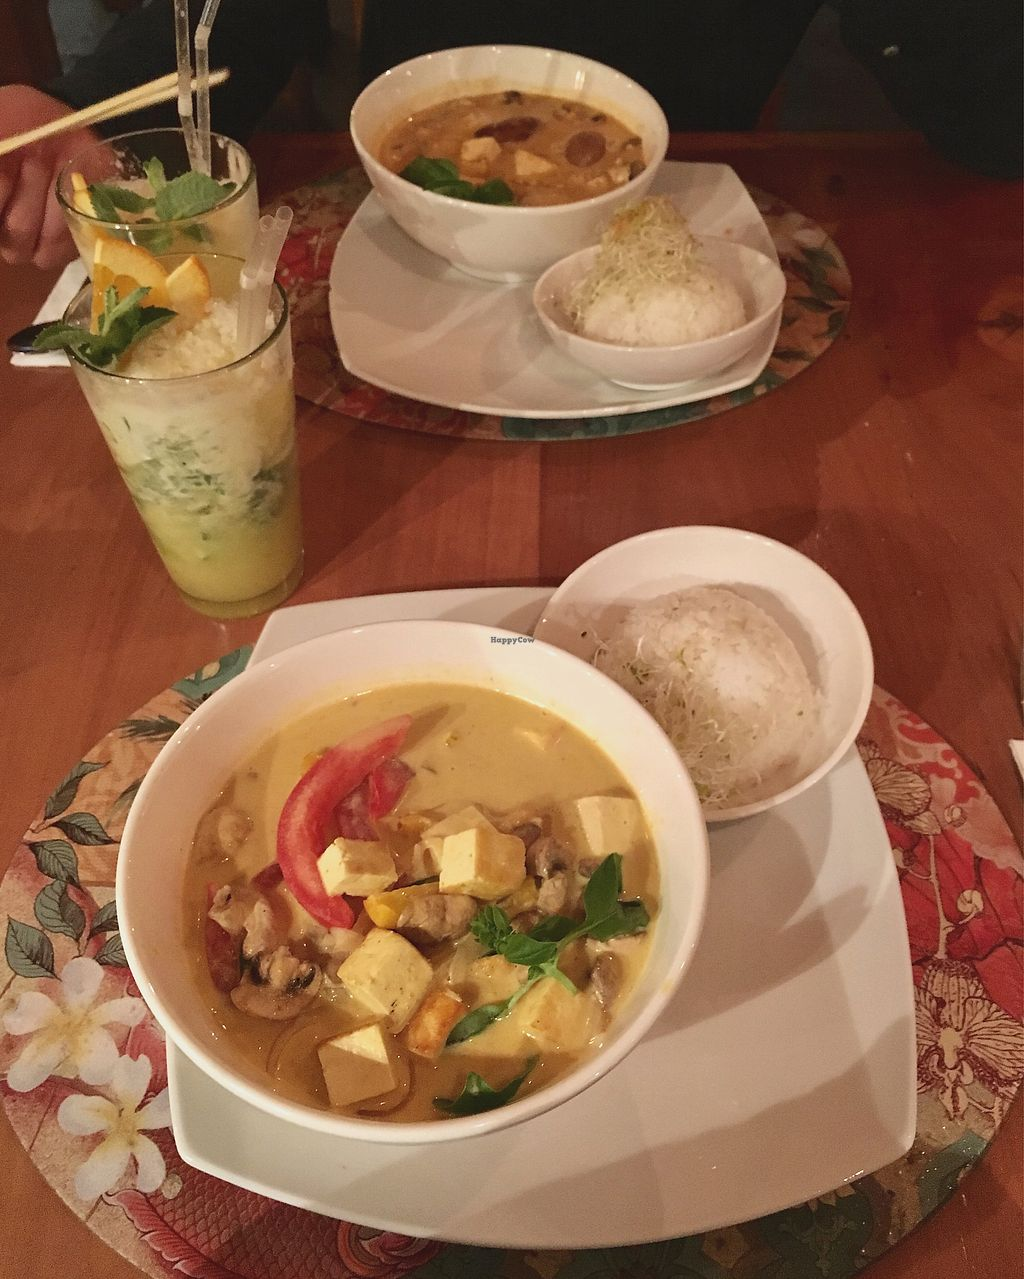 """Photo of Pad Thai  by <a href=""""/members/profile/CamilaSilvaL"""">CamilaSilvaL</a> <br/>Curries and mojitos <br/> February 5, 2018  - <a href='/contact/abuse/image/48824/355191'>Report</a>"""